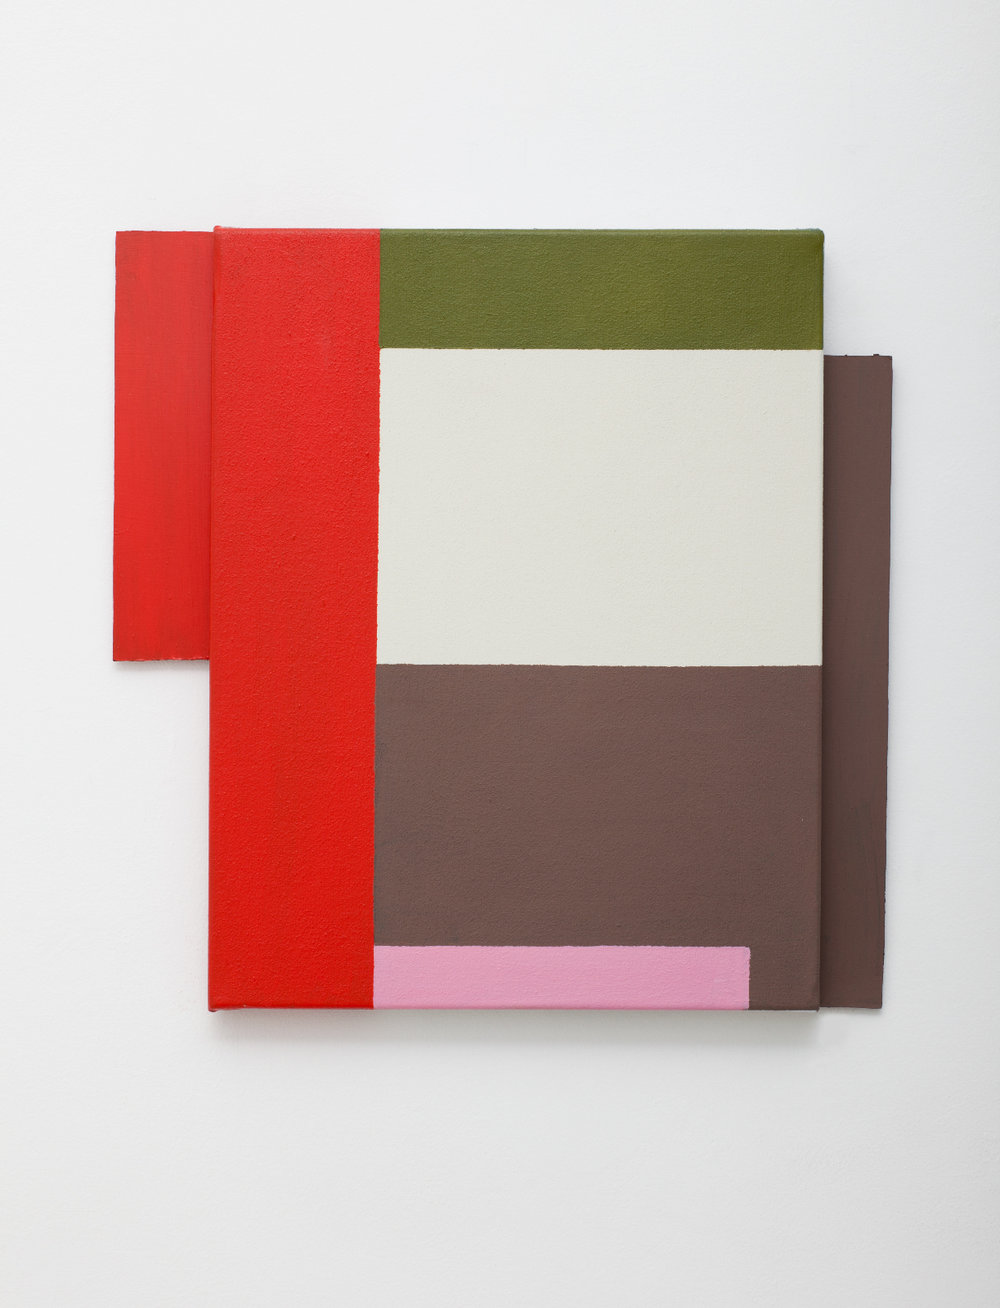 SIMON BLAU  Low Pink  2010 acrylic on canvas and masonite 35 × 36 cm